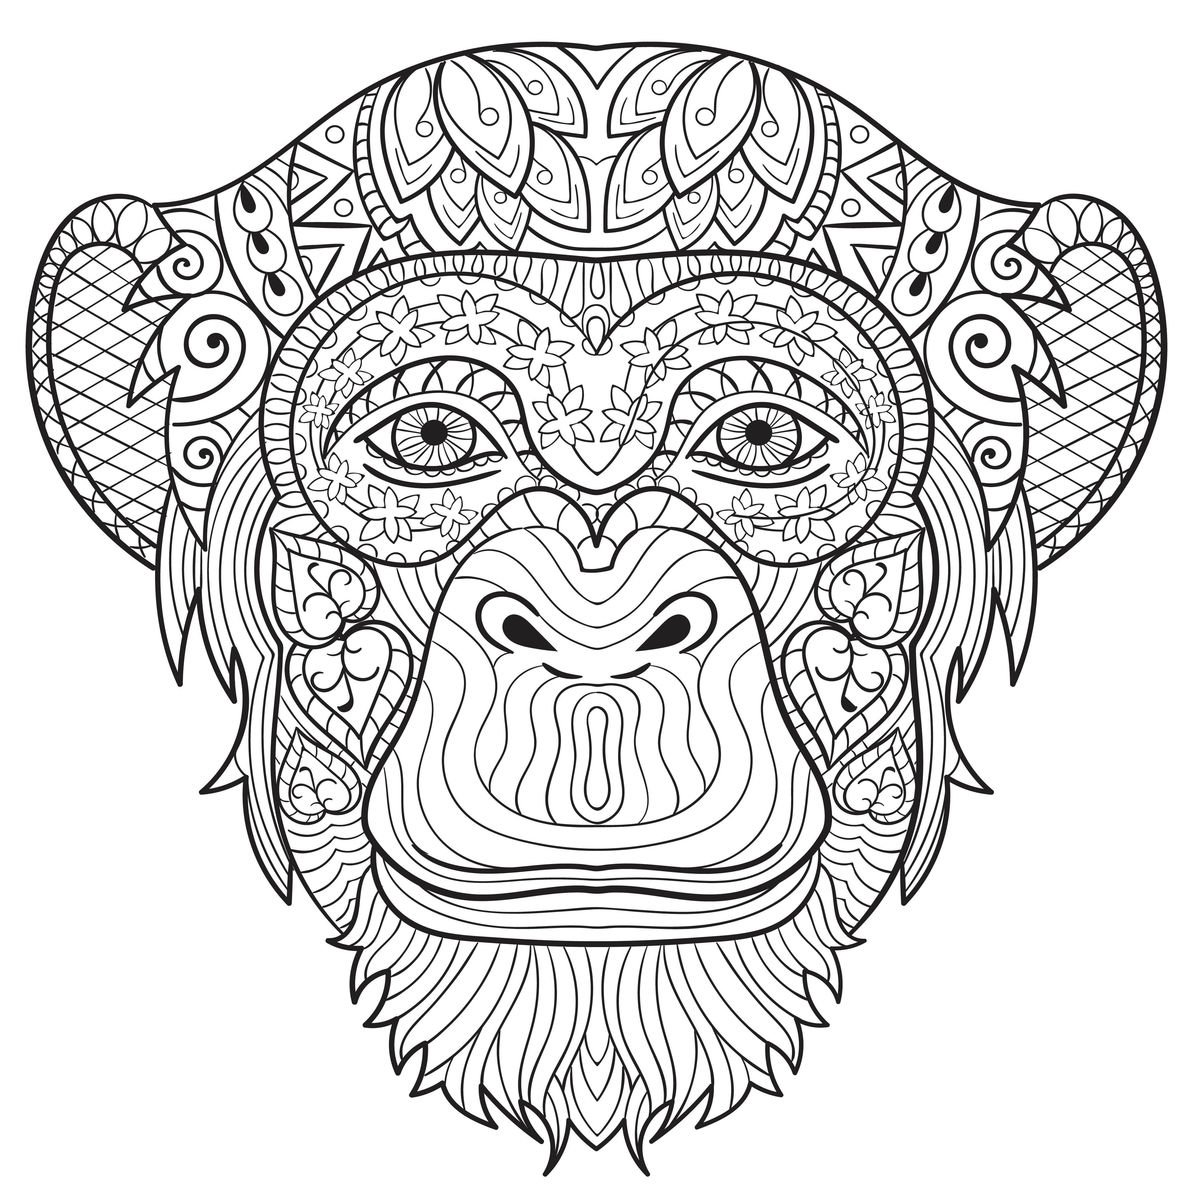 Free Adult Coloring Pages | Creatively Calm Studios